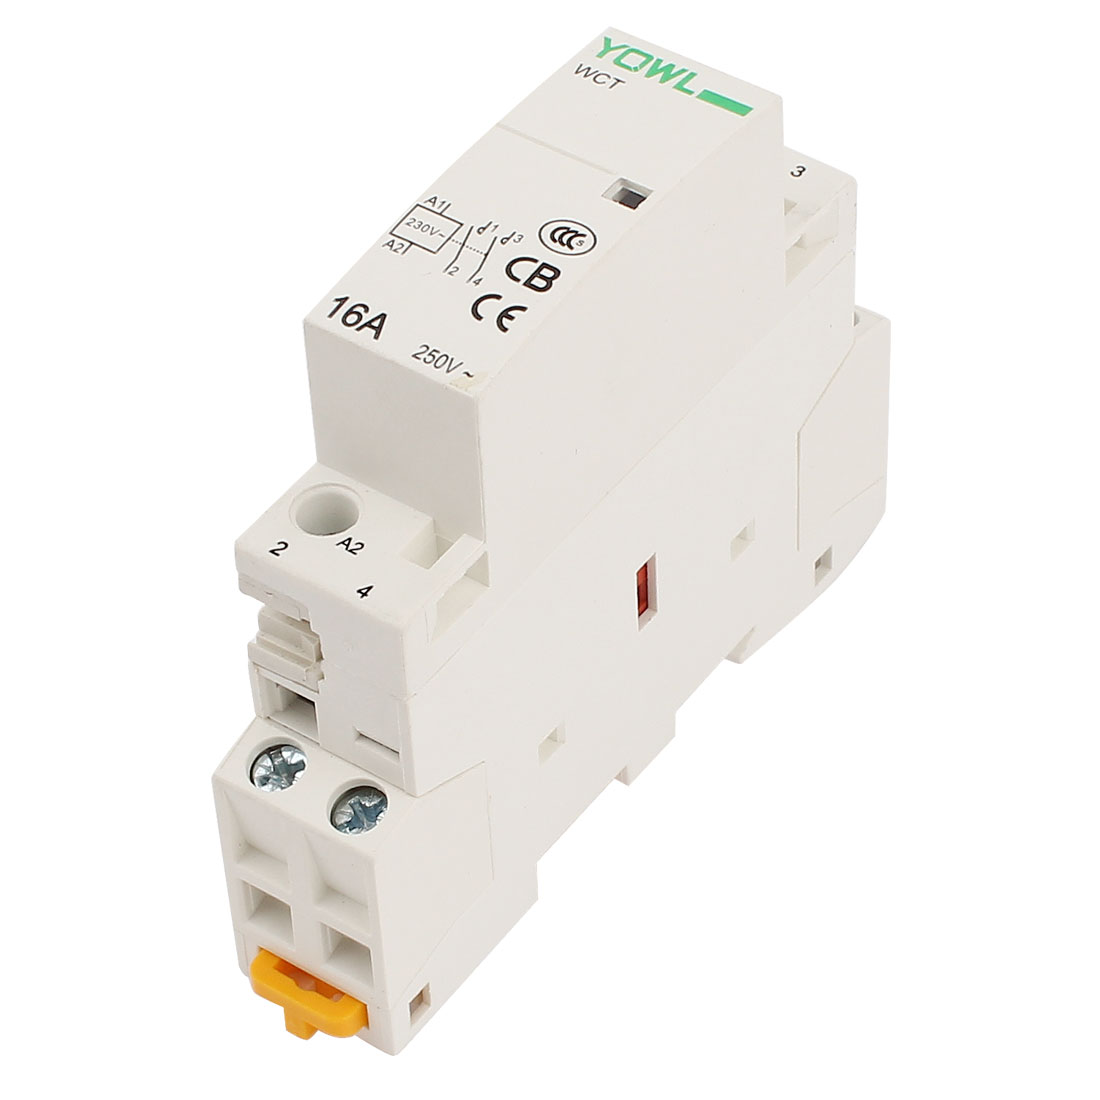 WCT-16A Double Pole Household Electric AC Power Contactor 16A Uc 230V